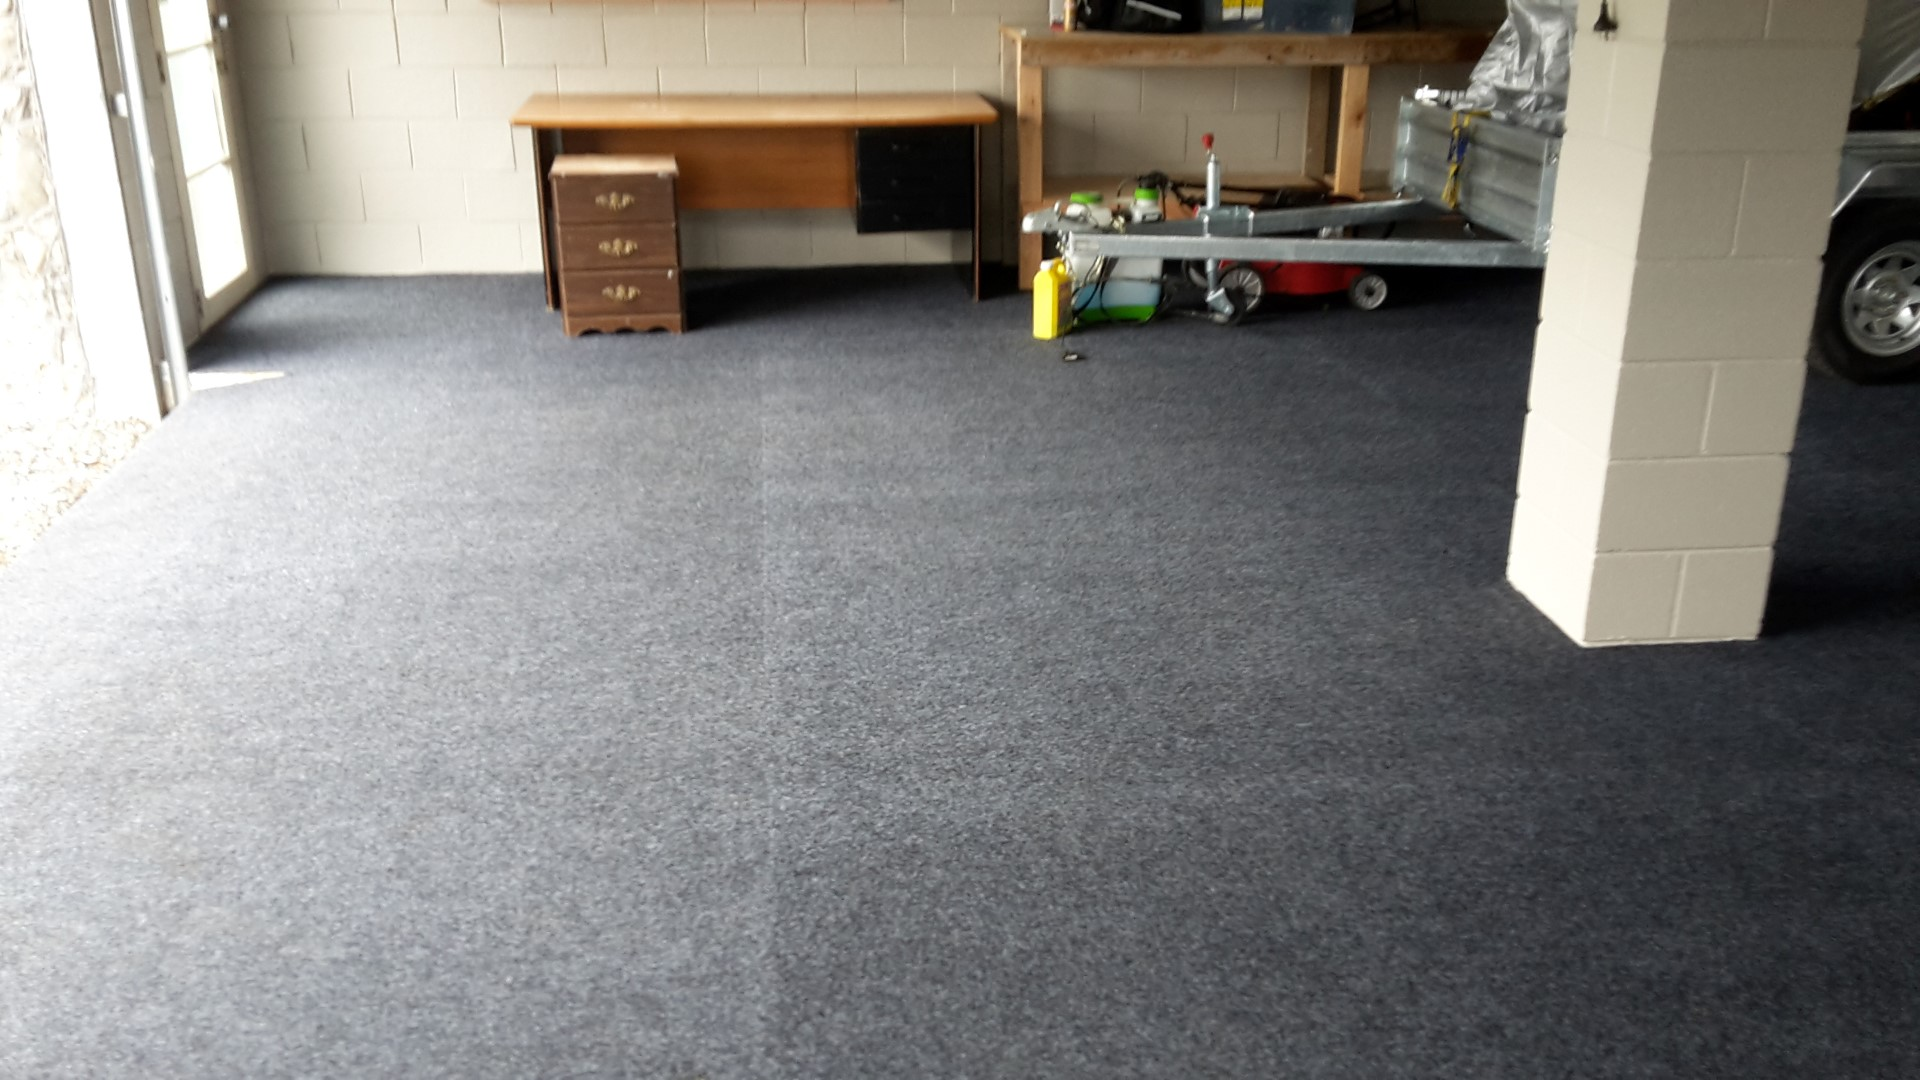 Carpet Cleaning at a garage